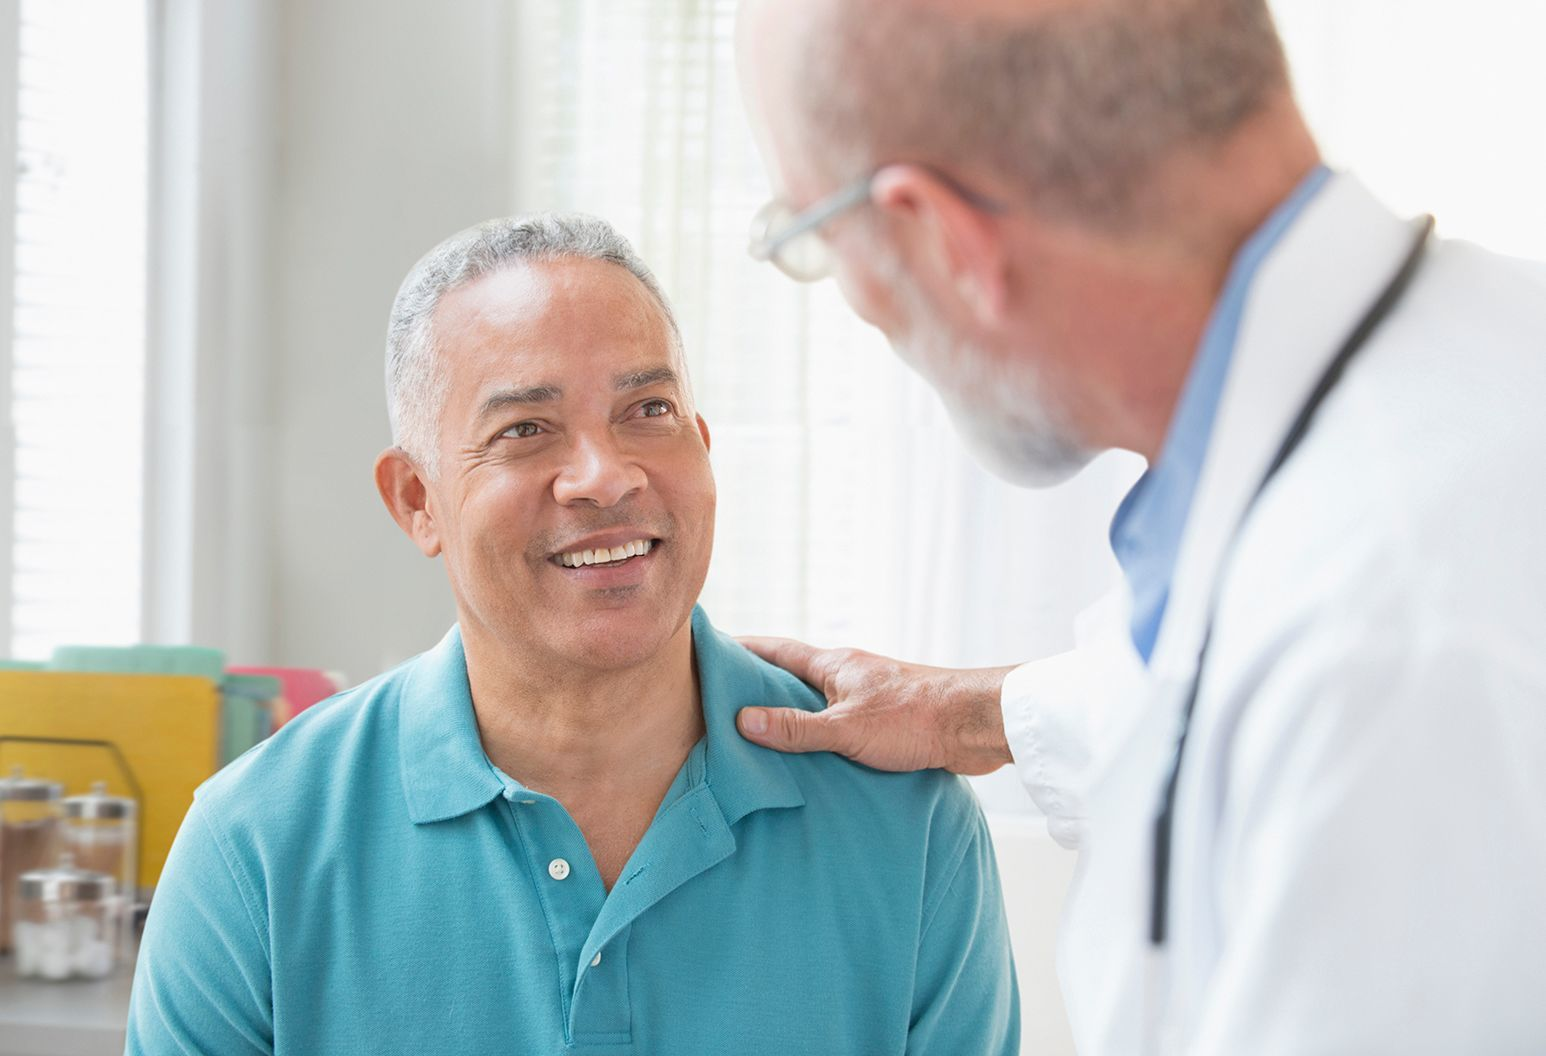 Man smiling while doctor has and on his left shoulder